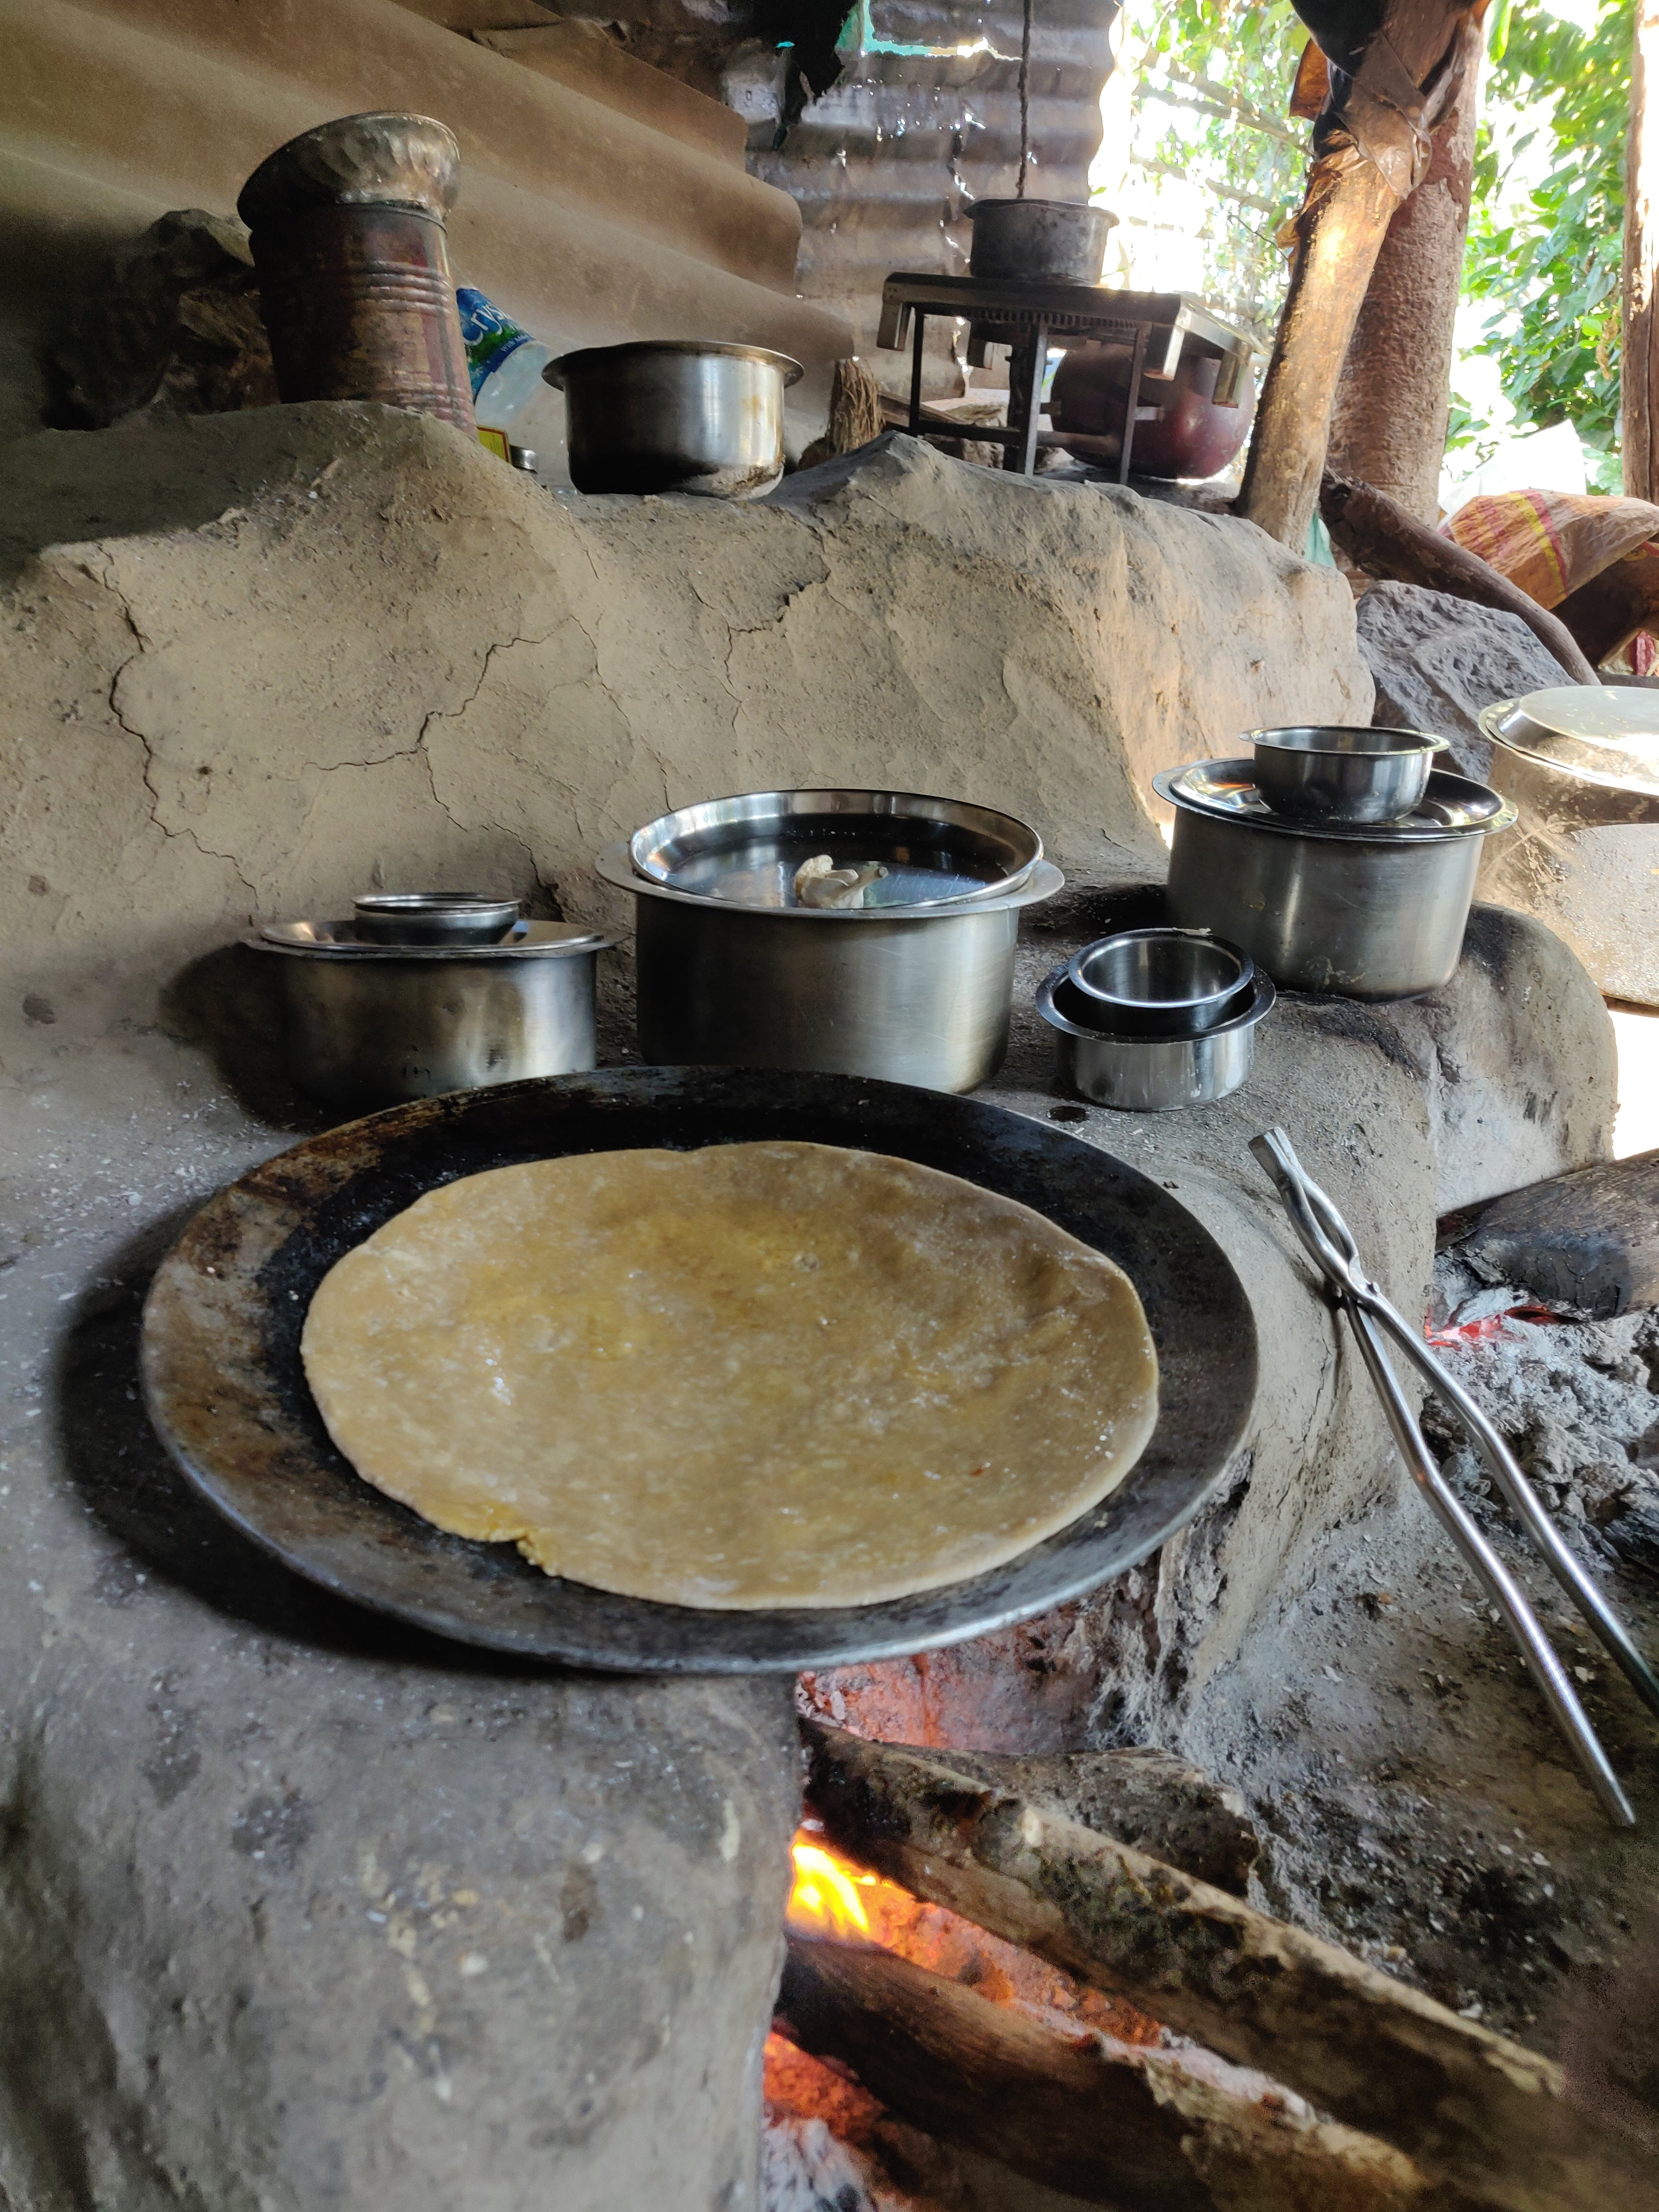 Special series, safarnama seriesm Indian dishes, solo travel, travel blogger, love for indian culture, Best sweet, healthy sweet, home made sweet, puran poli, how to make puran poli, happy sweet, eat healthy